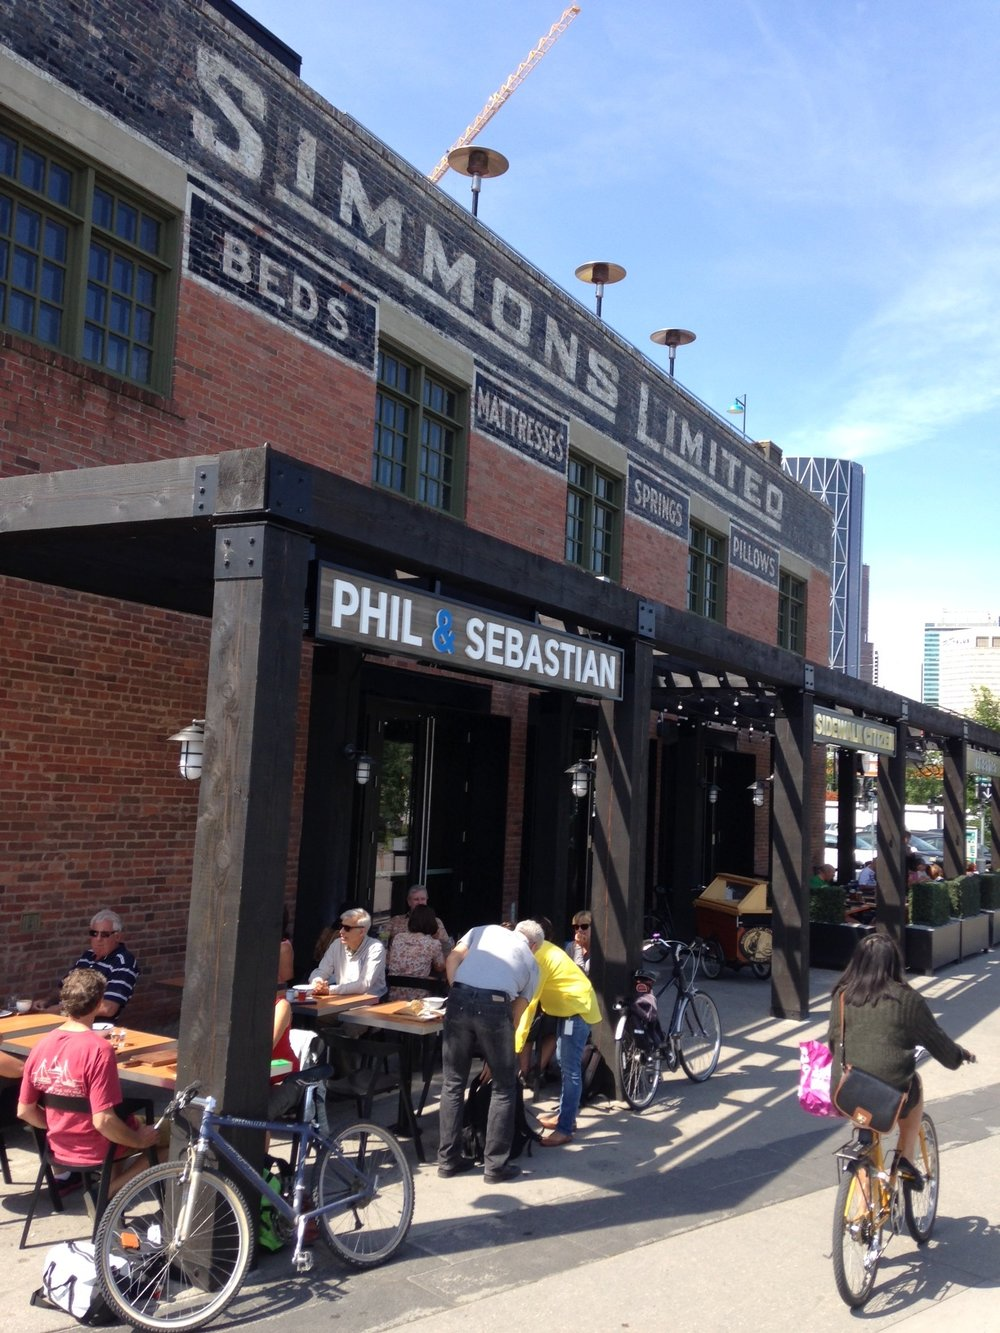 East Village: The Simmons building has an upscale restaurant, cafe and bakery.